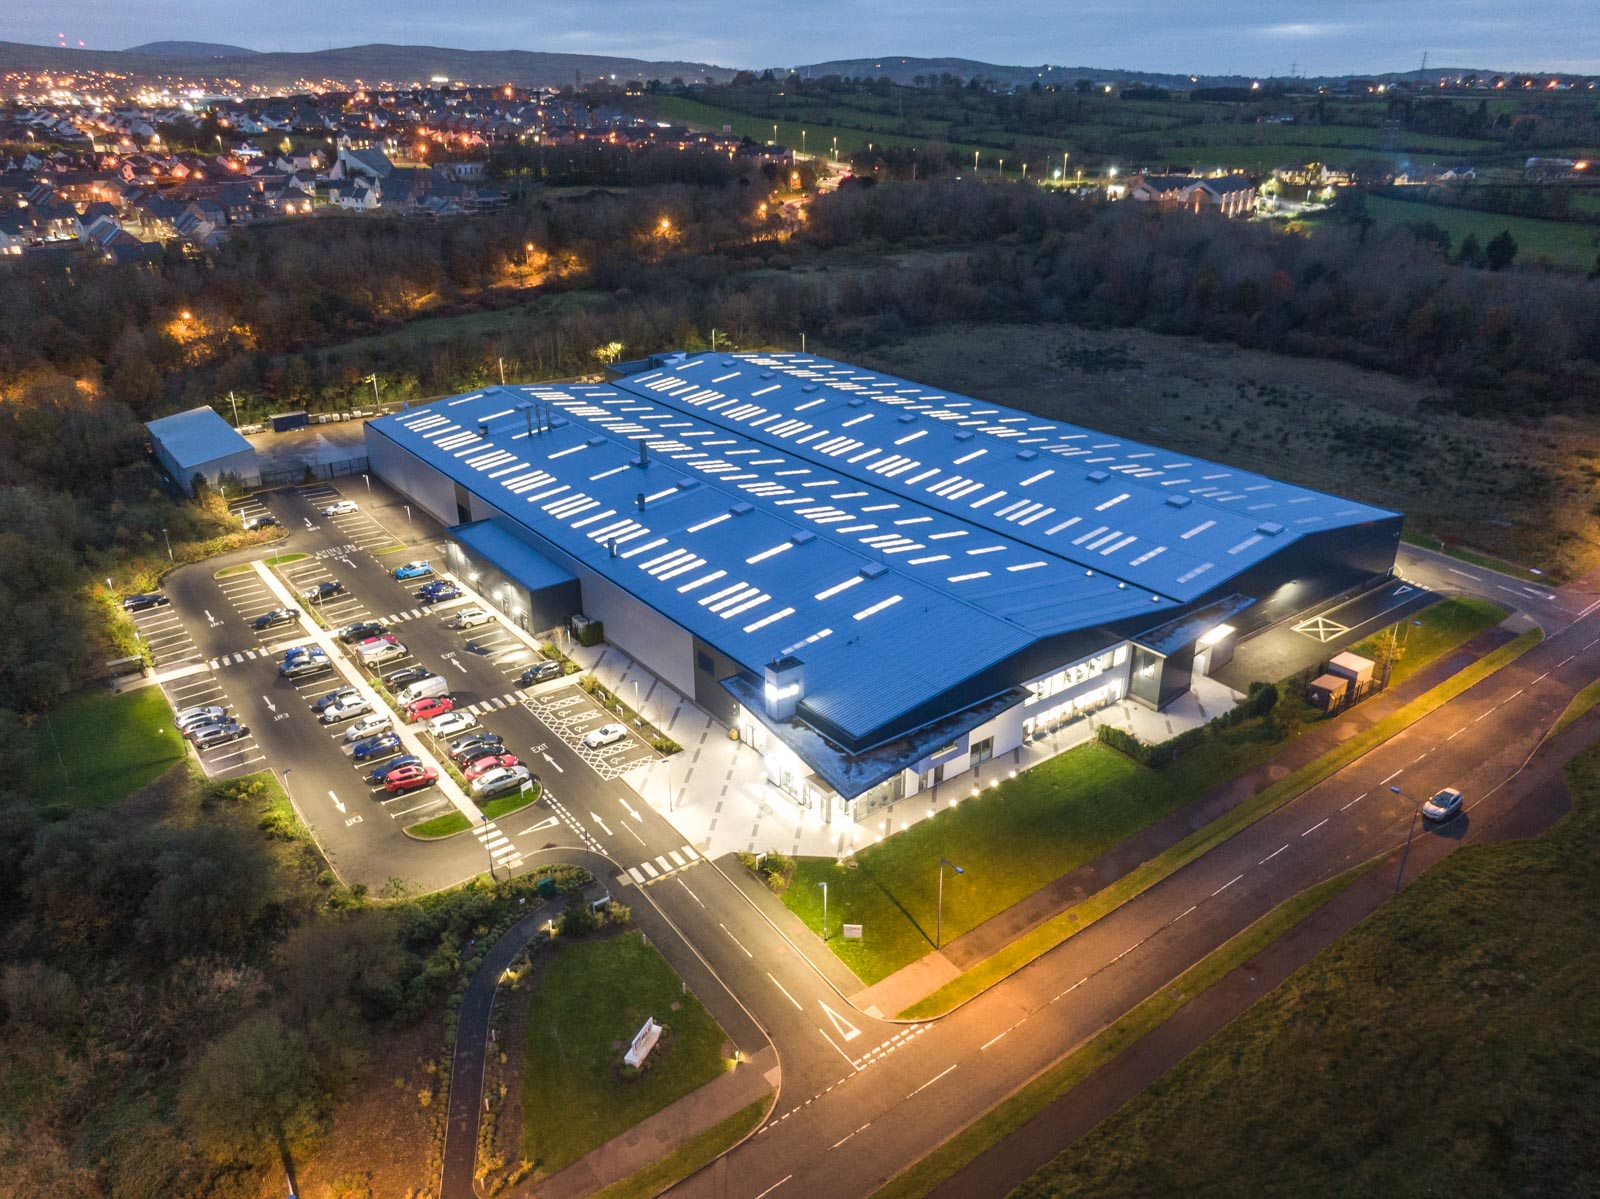 Aerial photograph of the RLC Group building in Newtownabbey by Bout Yeh drone photography and video production - image 0001